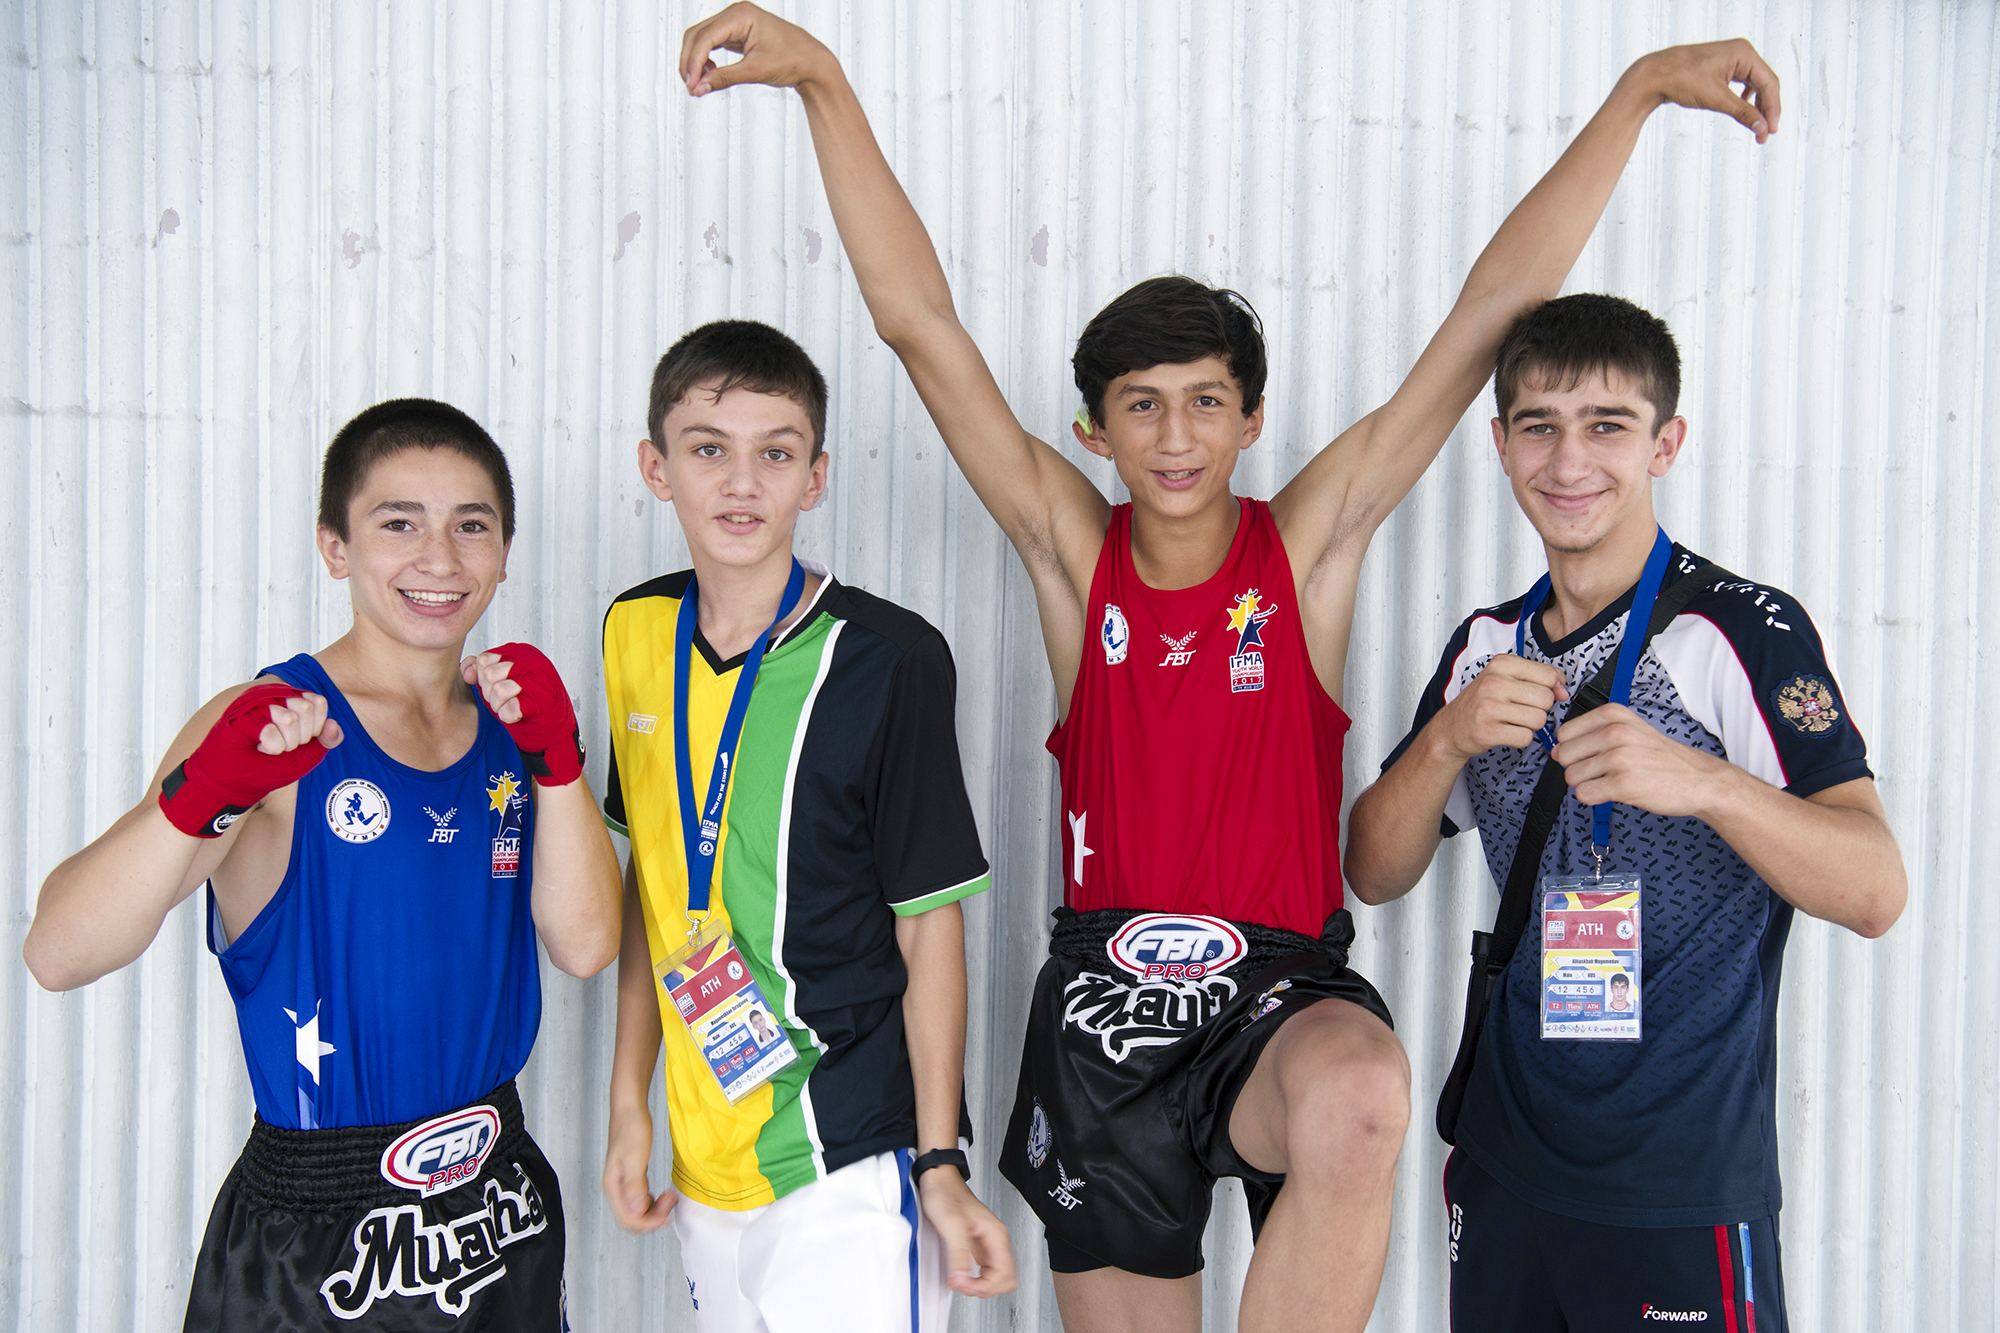 An assignment to photograph for the International Federation of Muay Thai Amateur (IFMA) at the World Youth Championships in Bangkok, Thailand.  The tournament was held from 3 to 11 August 2017. Over fifty countries took part in the competition with hundreds of athletes between the ages of 12 to 17 in attendance.